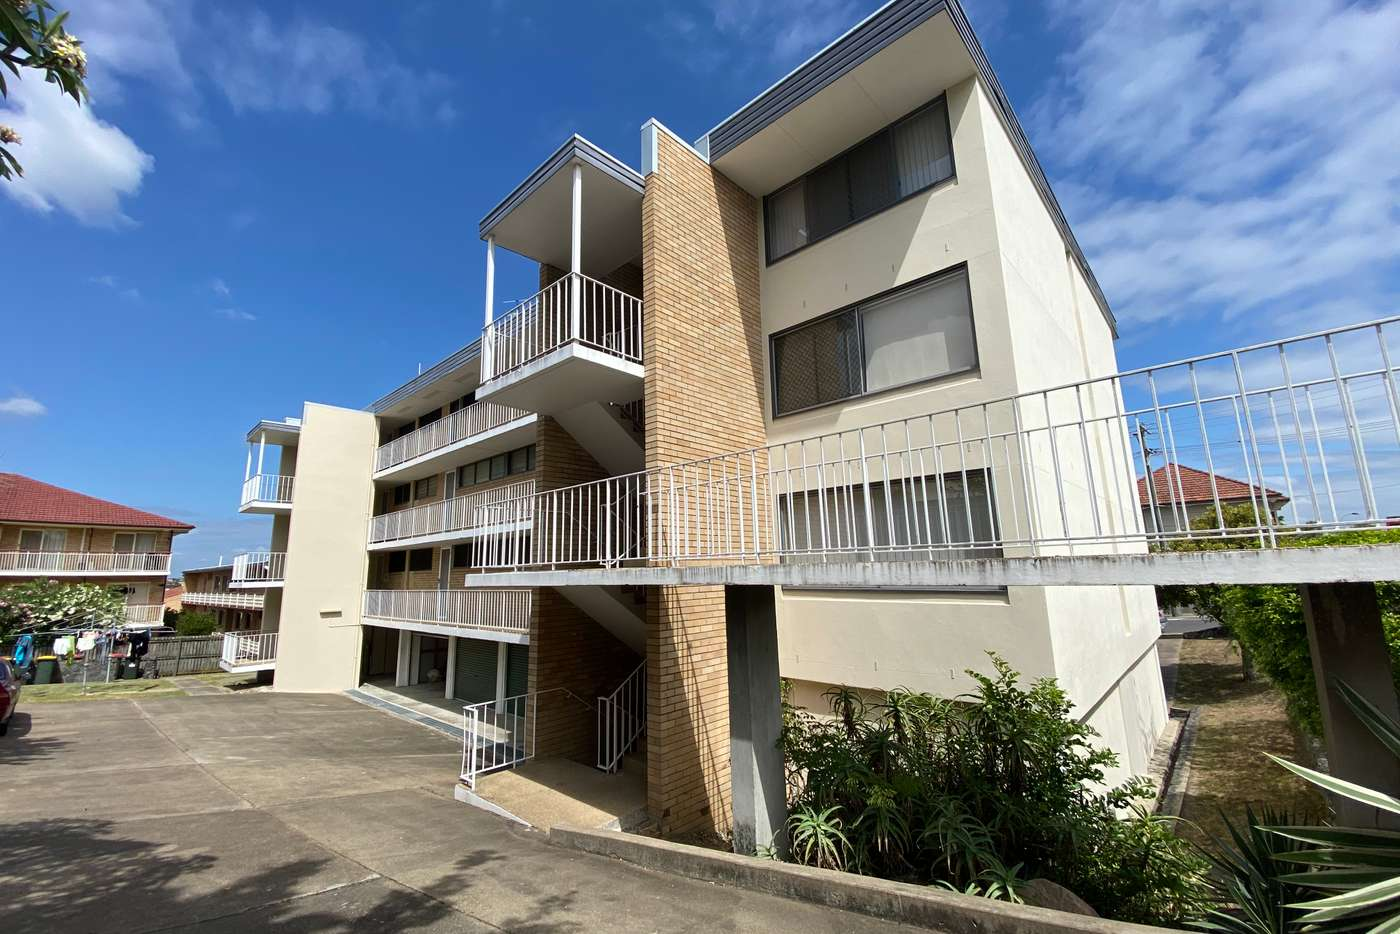 Main view of Homely house listing, 10/223 Cavendish Road, Coorparoo QLD 4151